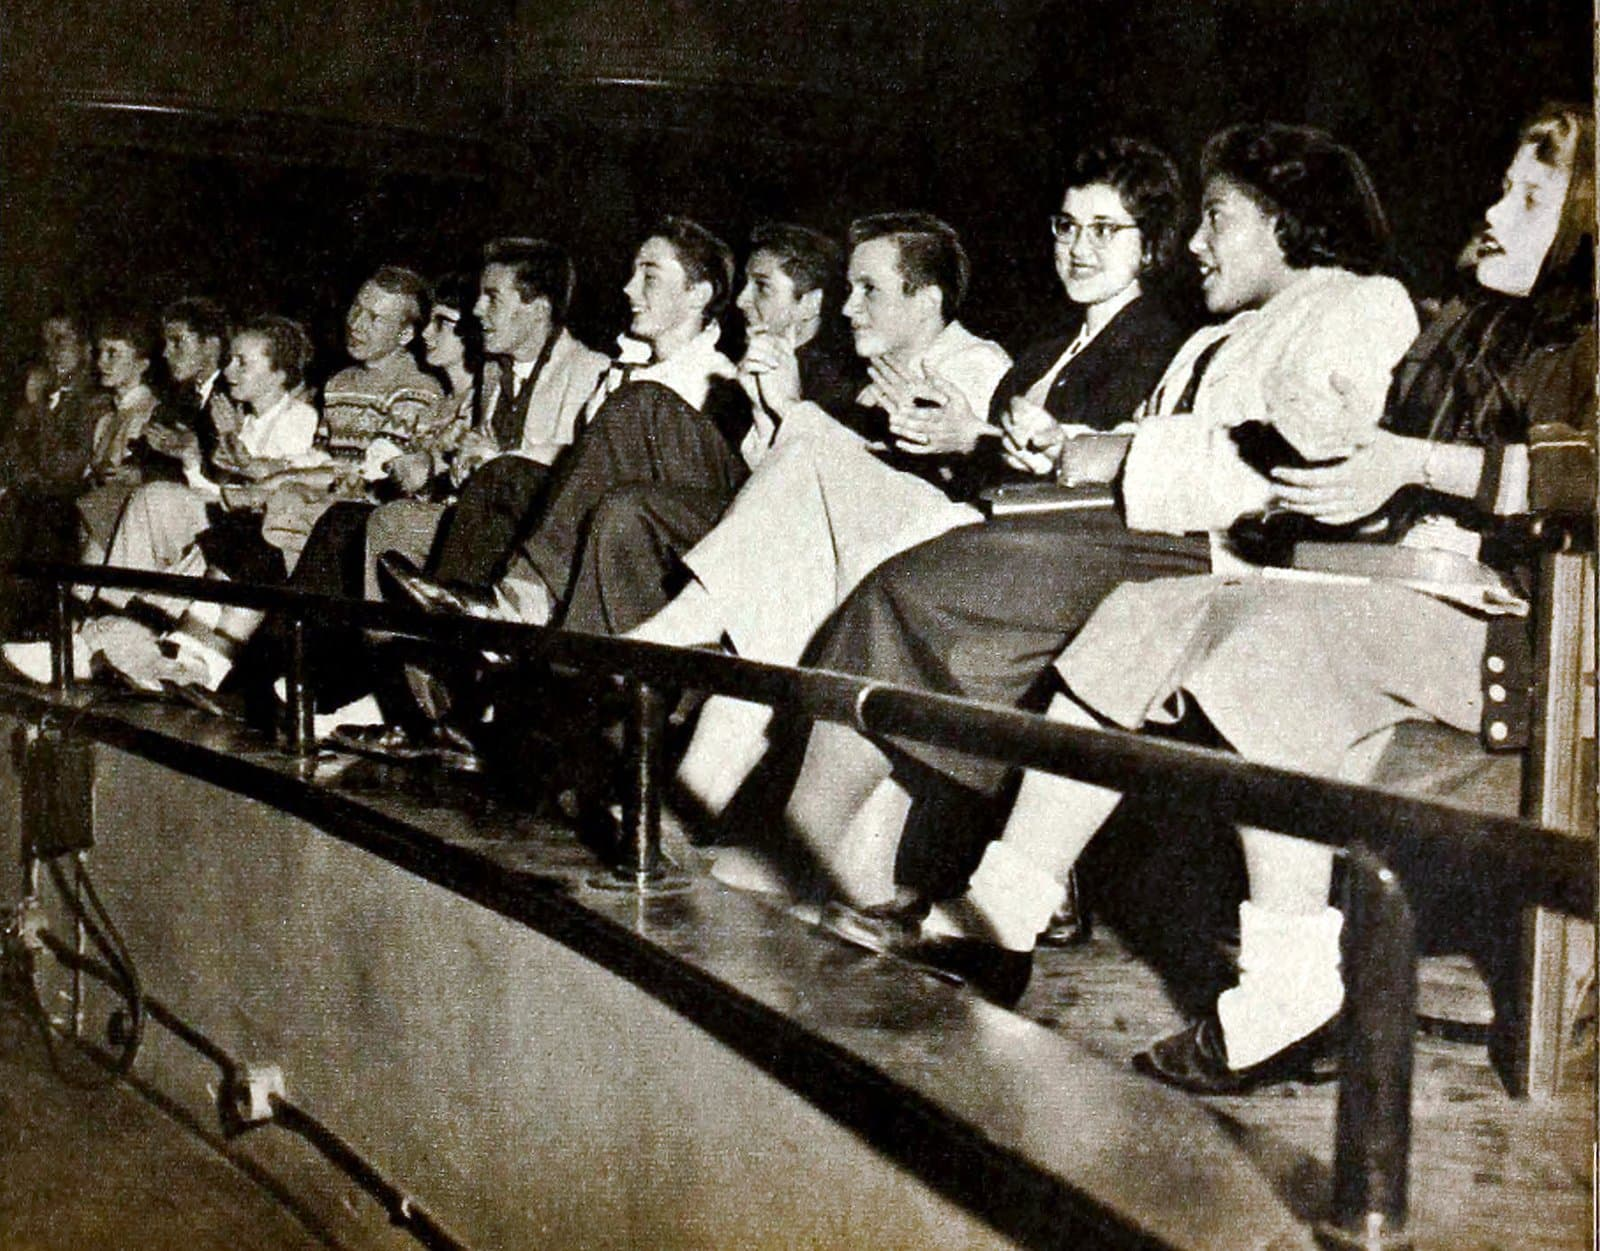 Audience for Bill Haley and His Comets concert - 1950s